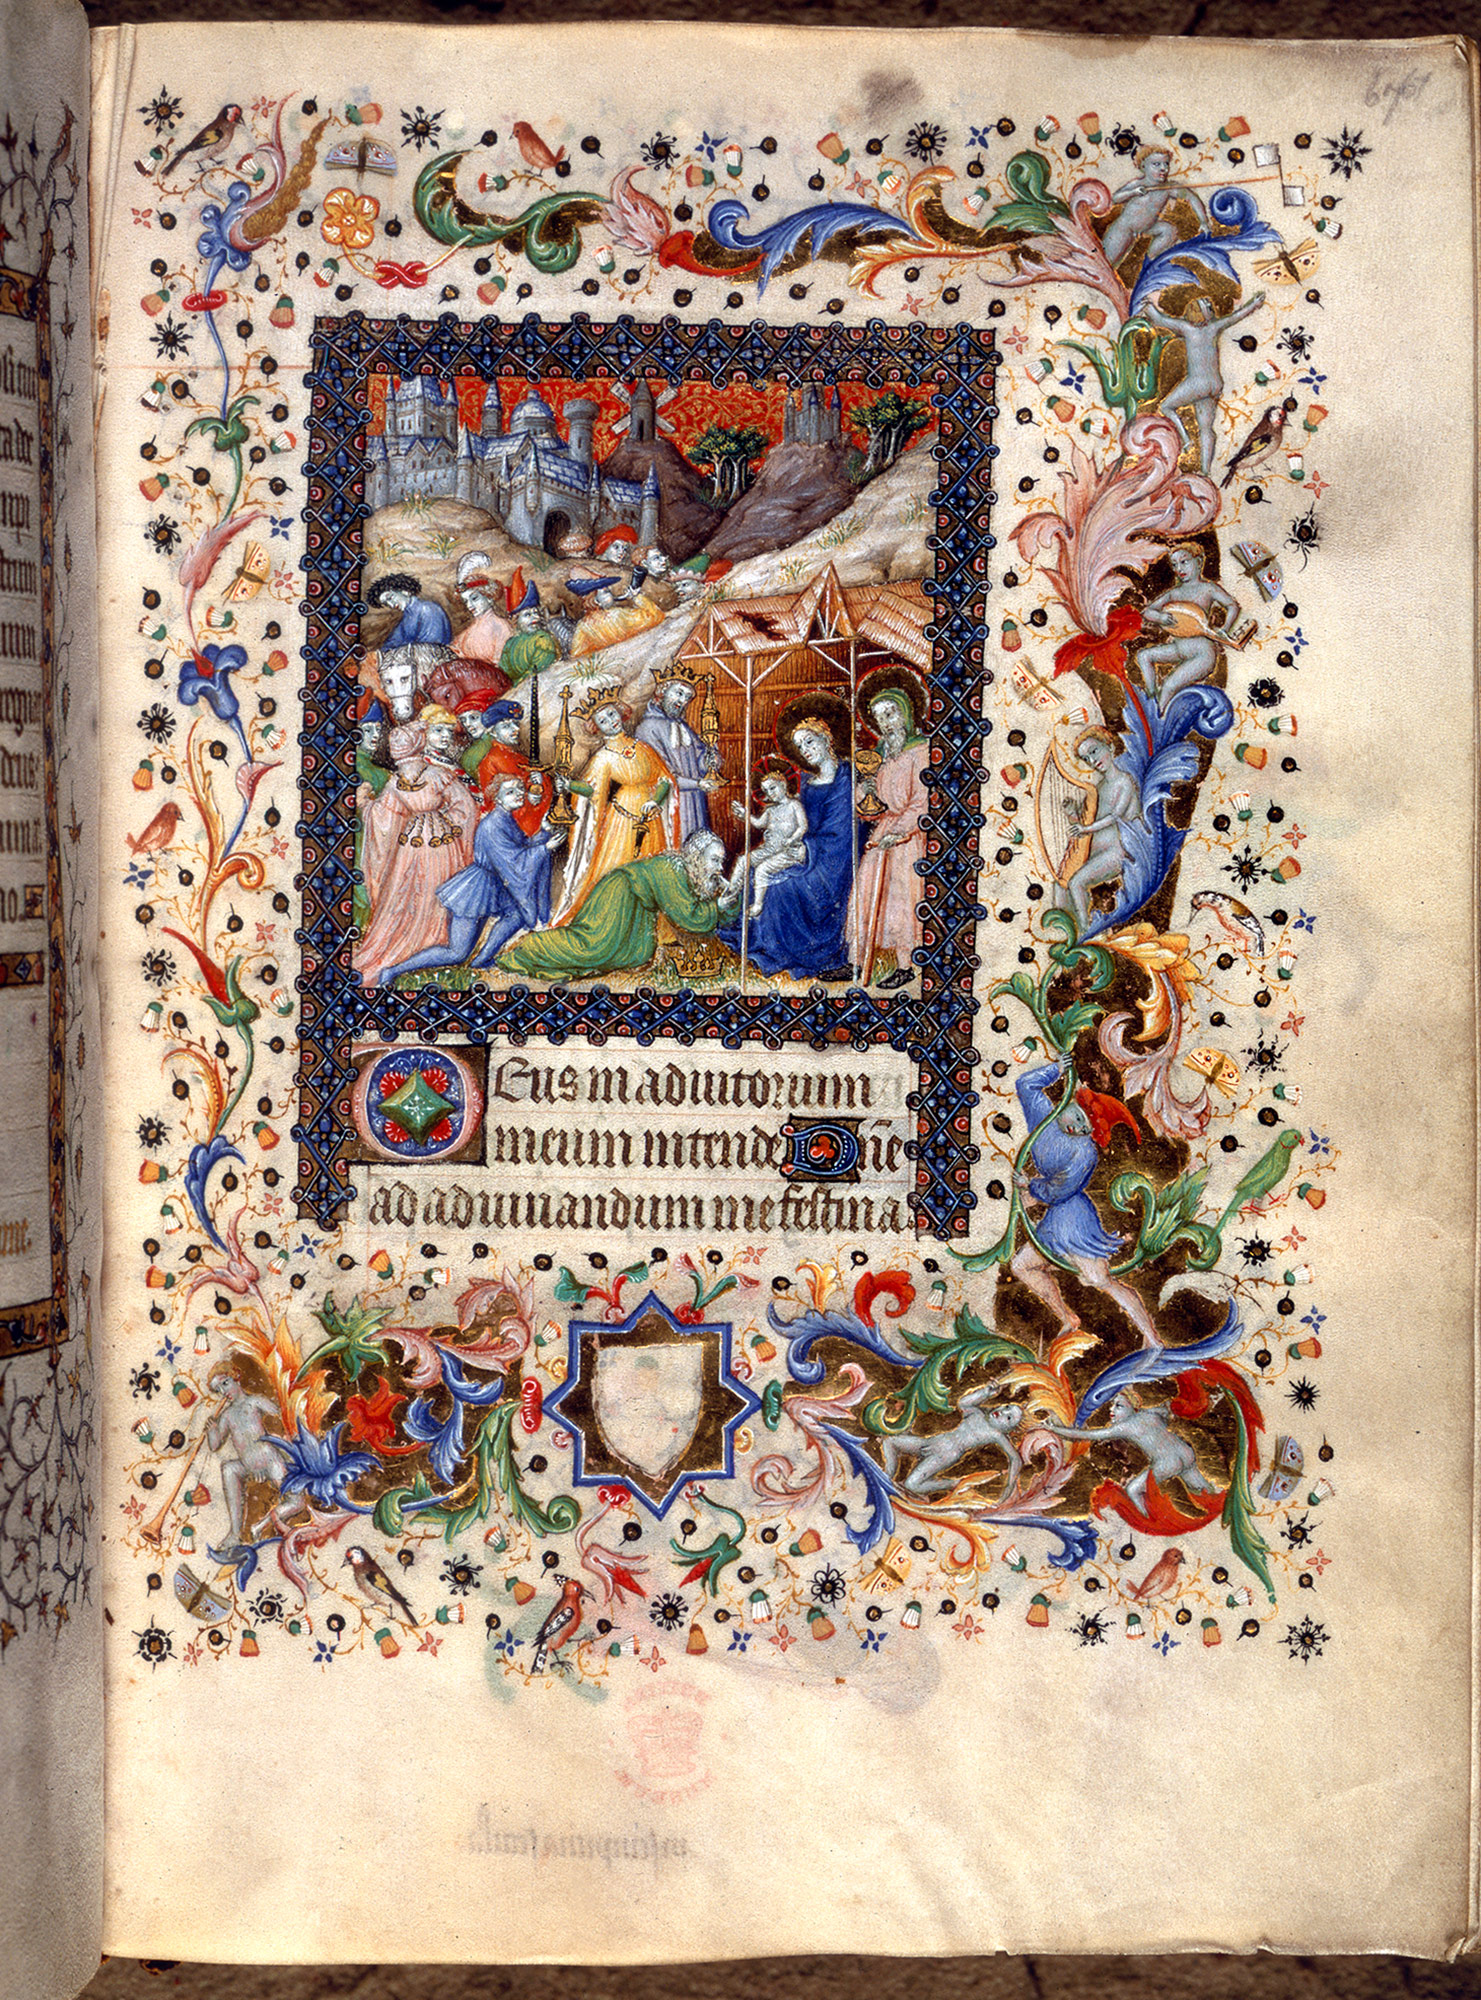 french 15th century book of hours, Add MS 29433